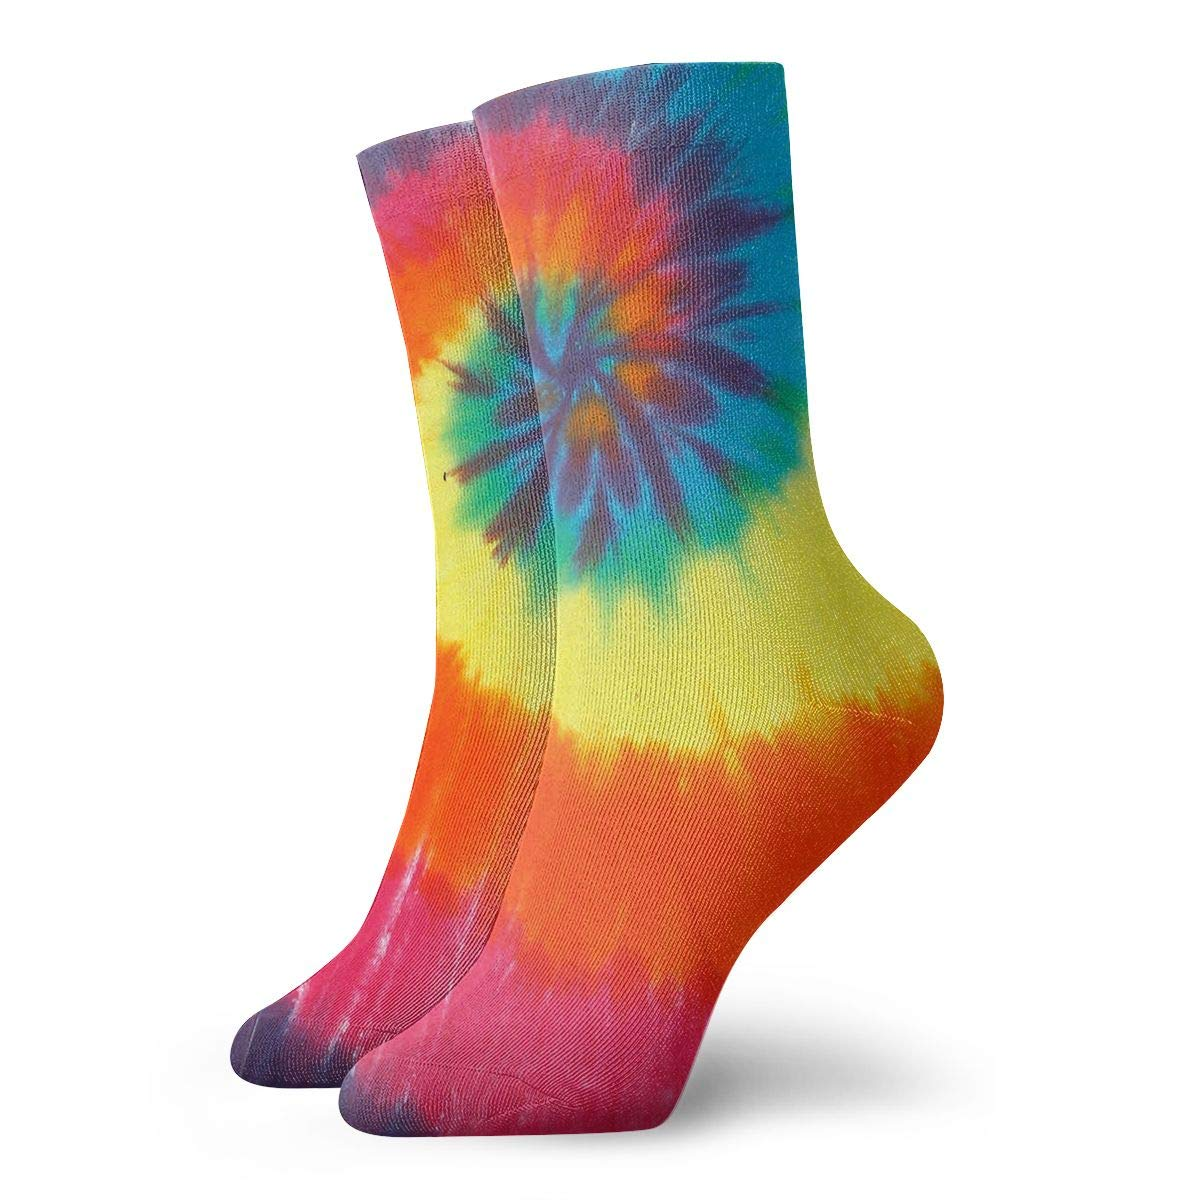 WEEDKEYCAT Rainbow Spiral Tie-dye Adult Short Socks Cotton Funny Socks for Mens Womens Yoga Hiking Cycling Running Soccer Sports